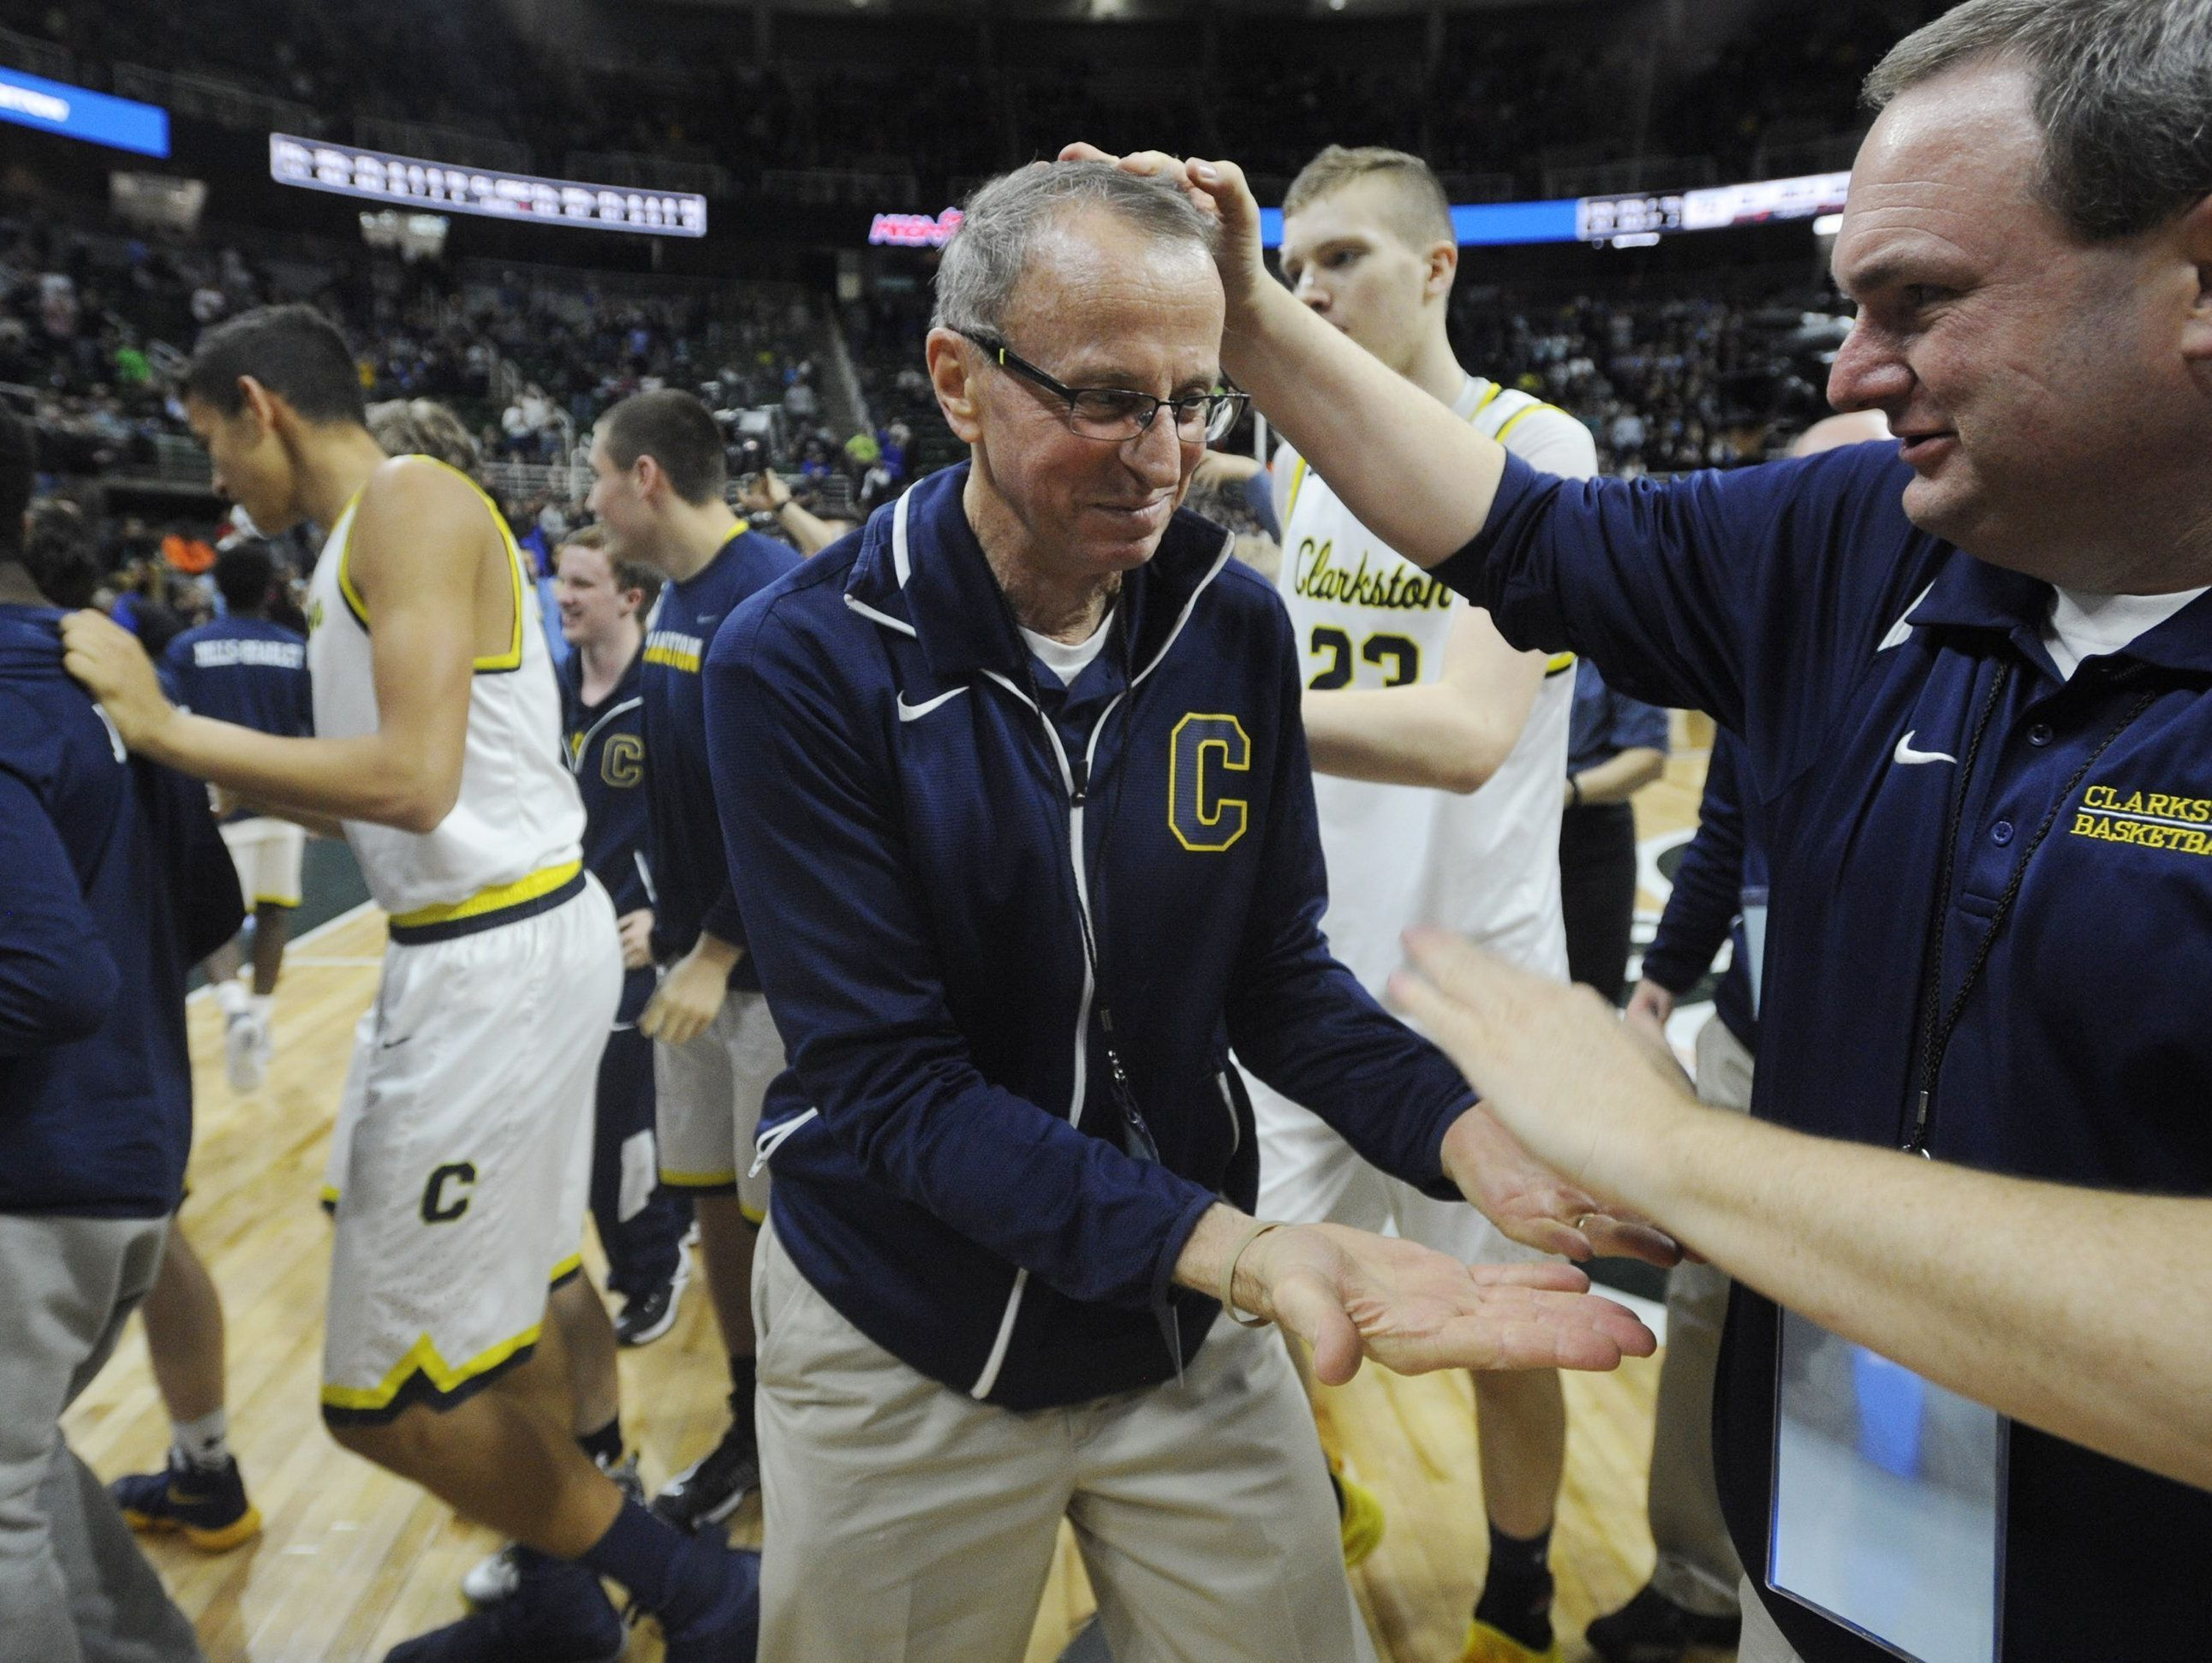 Clarkston head coach Dan Fife, left, accepts congratulations after defeating Grand Rapids Christian, 75-69, in the MHSAA Class A boys basketball final at the Breslin Center on Saturday, March 25, 2017.